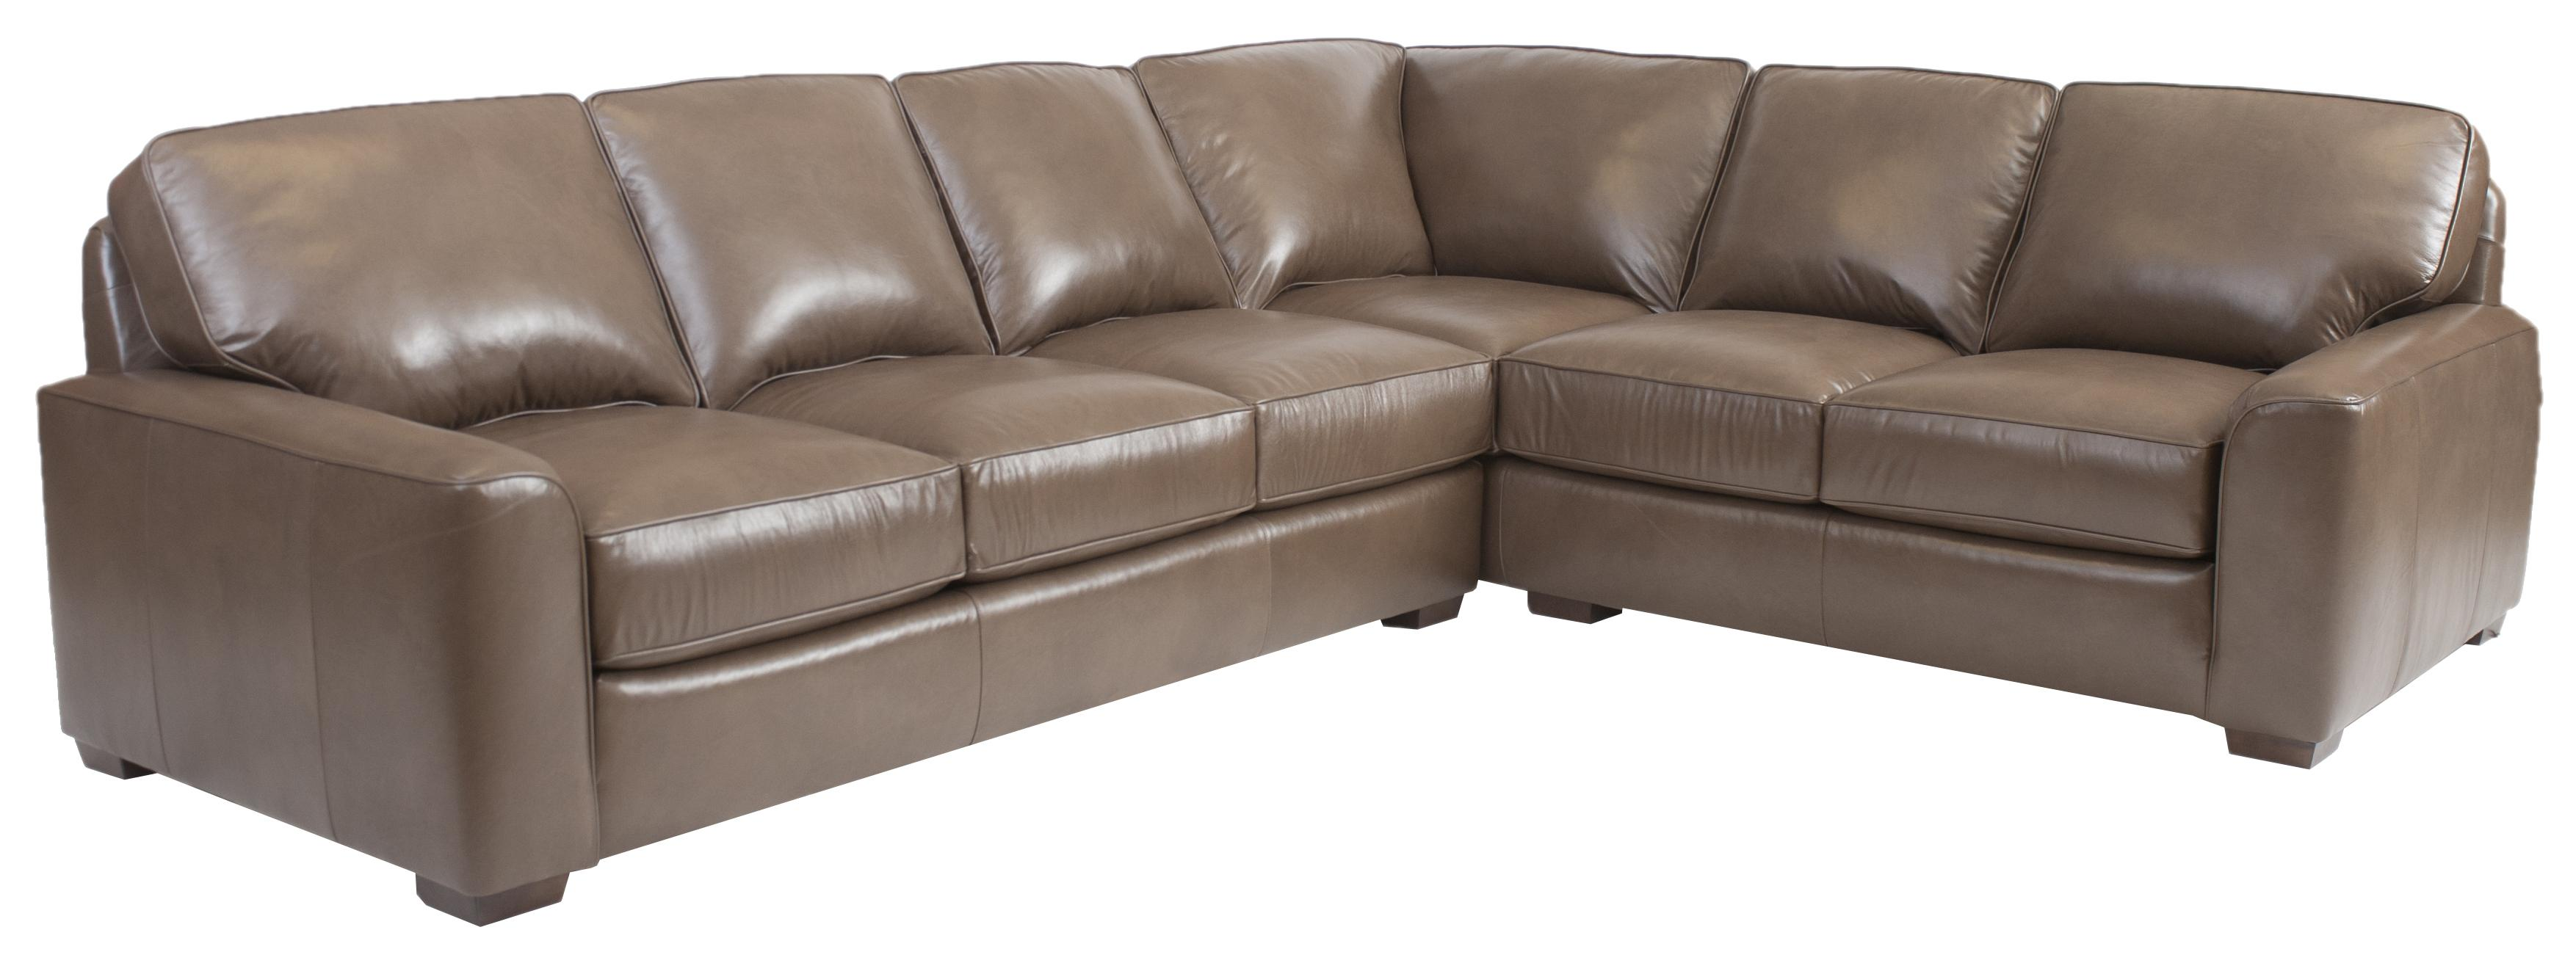 Large Corner Sectional Sofa By Smith Brothers Wolf And Gardiner  ~ Build Your Own Sofa Bed